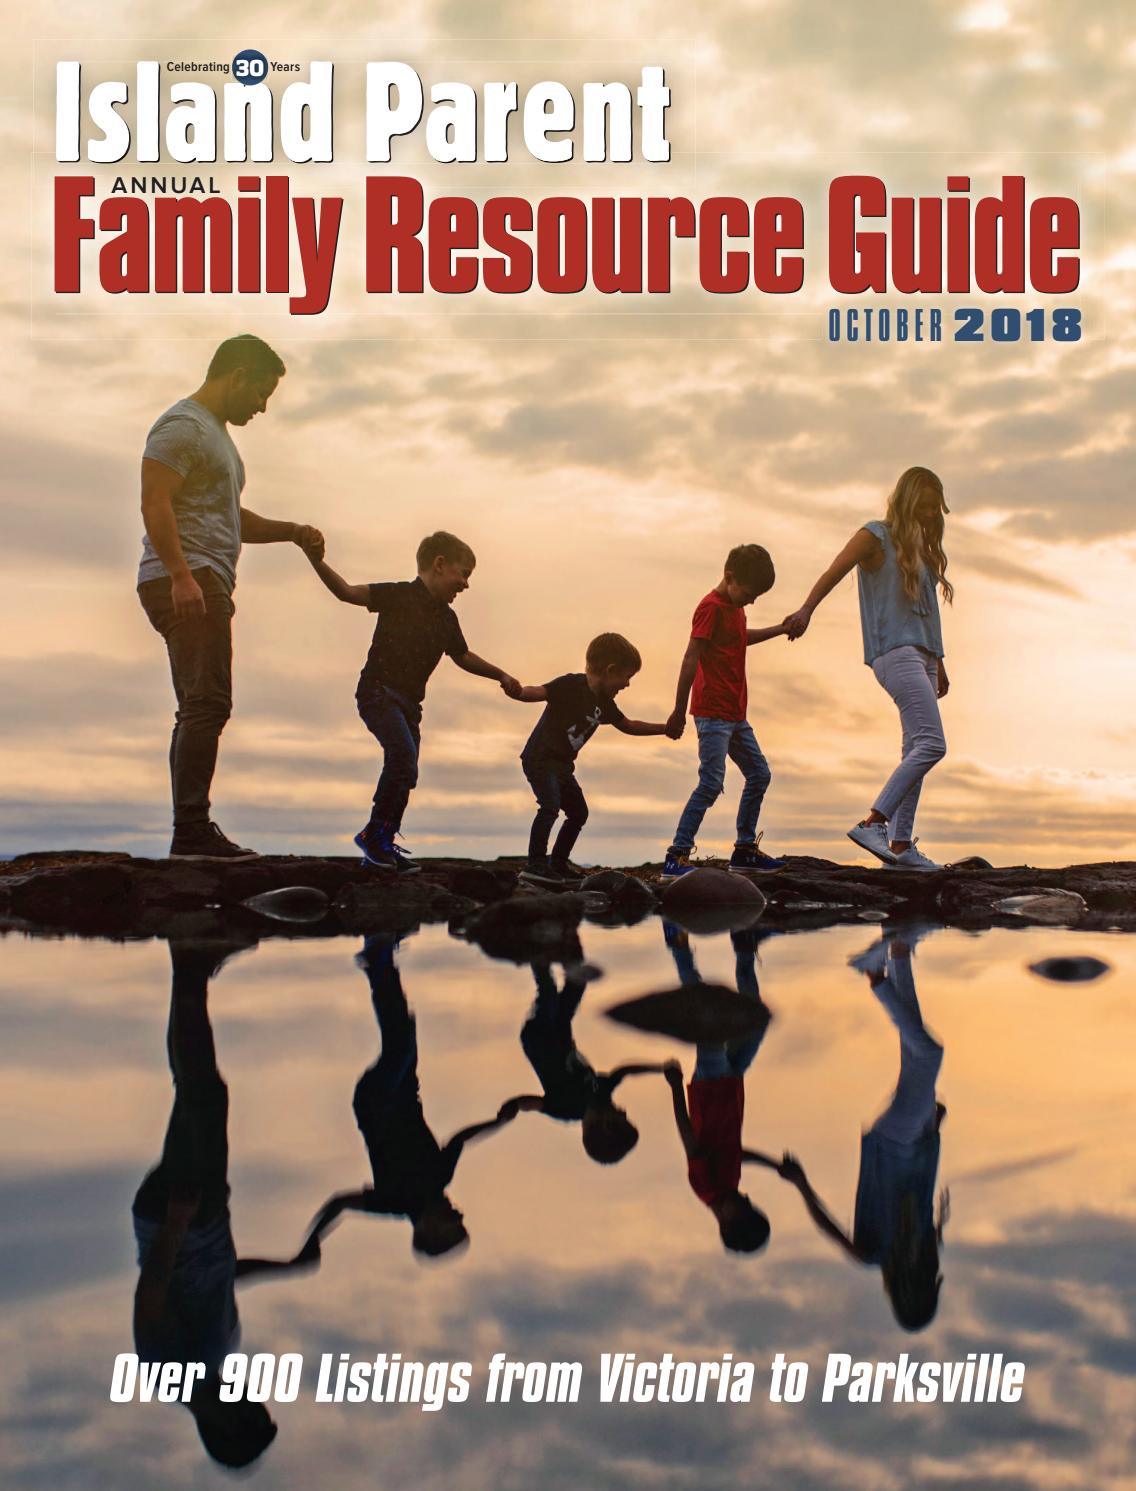 Island Parent Family Resource Guide 2018 by Island Parent